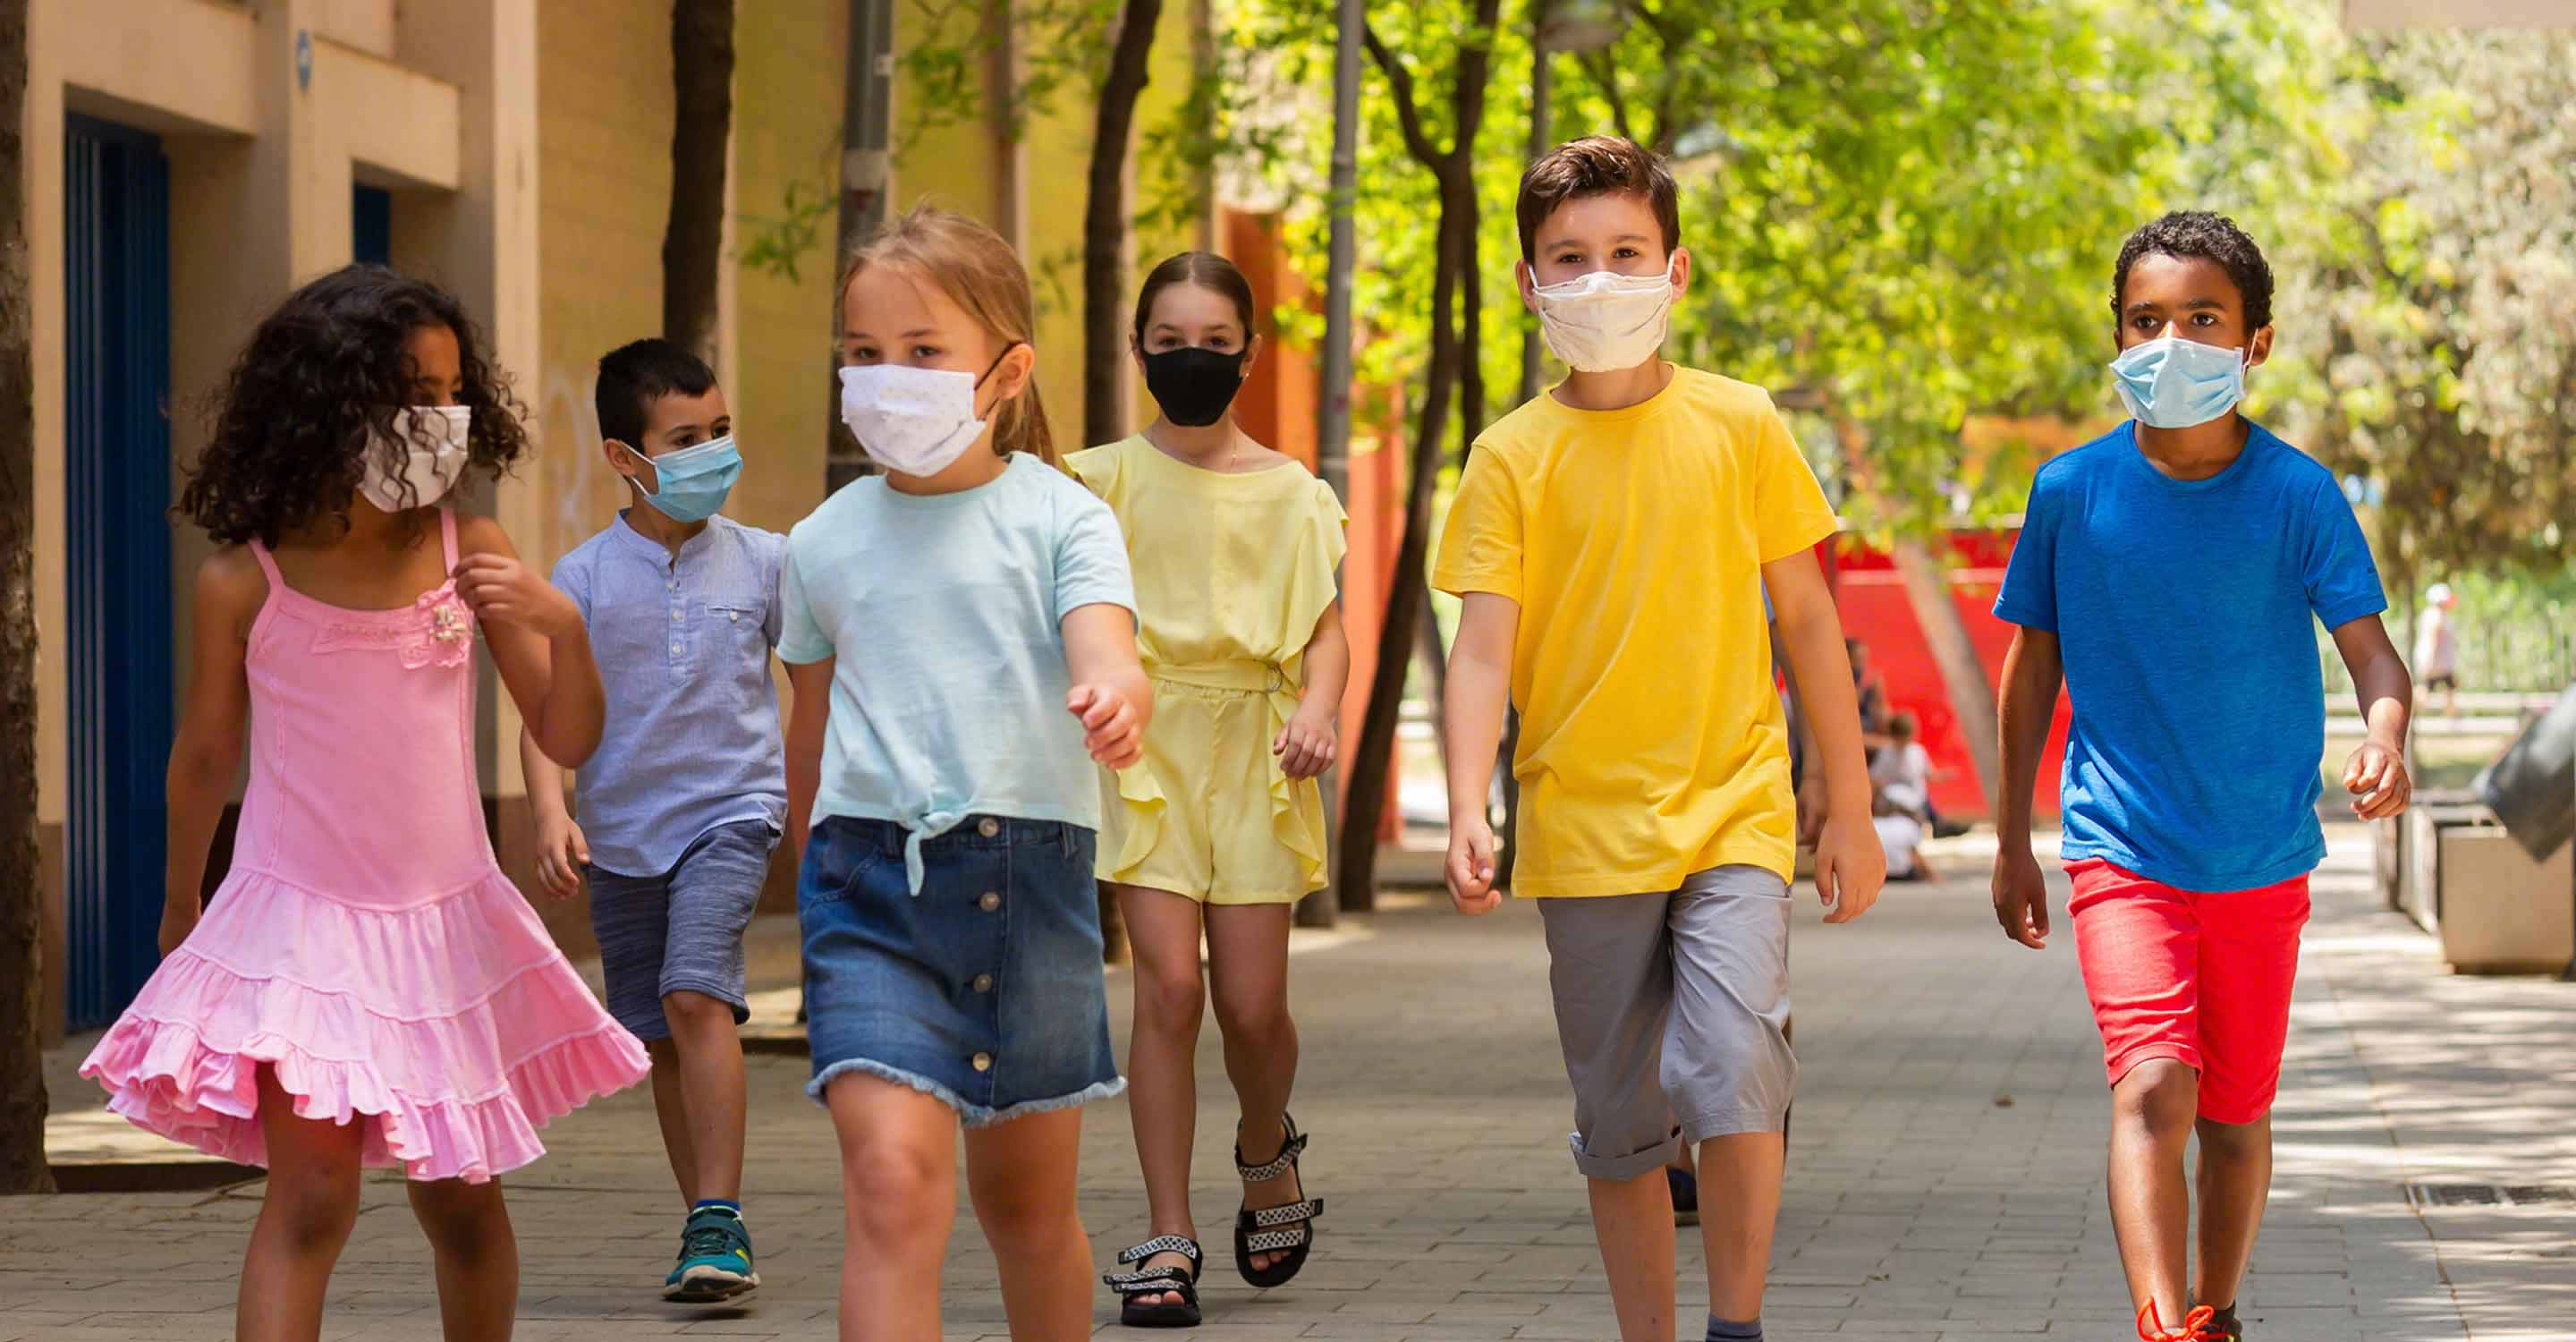 How schools can help reduce COVID-19 exposure